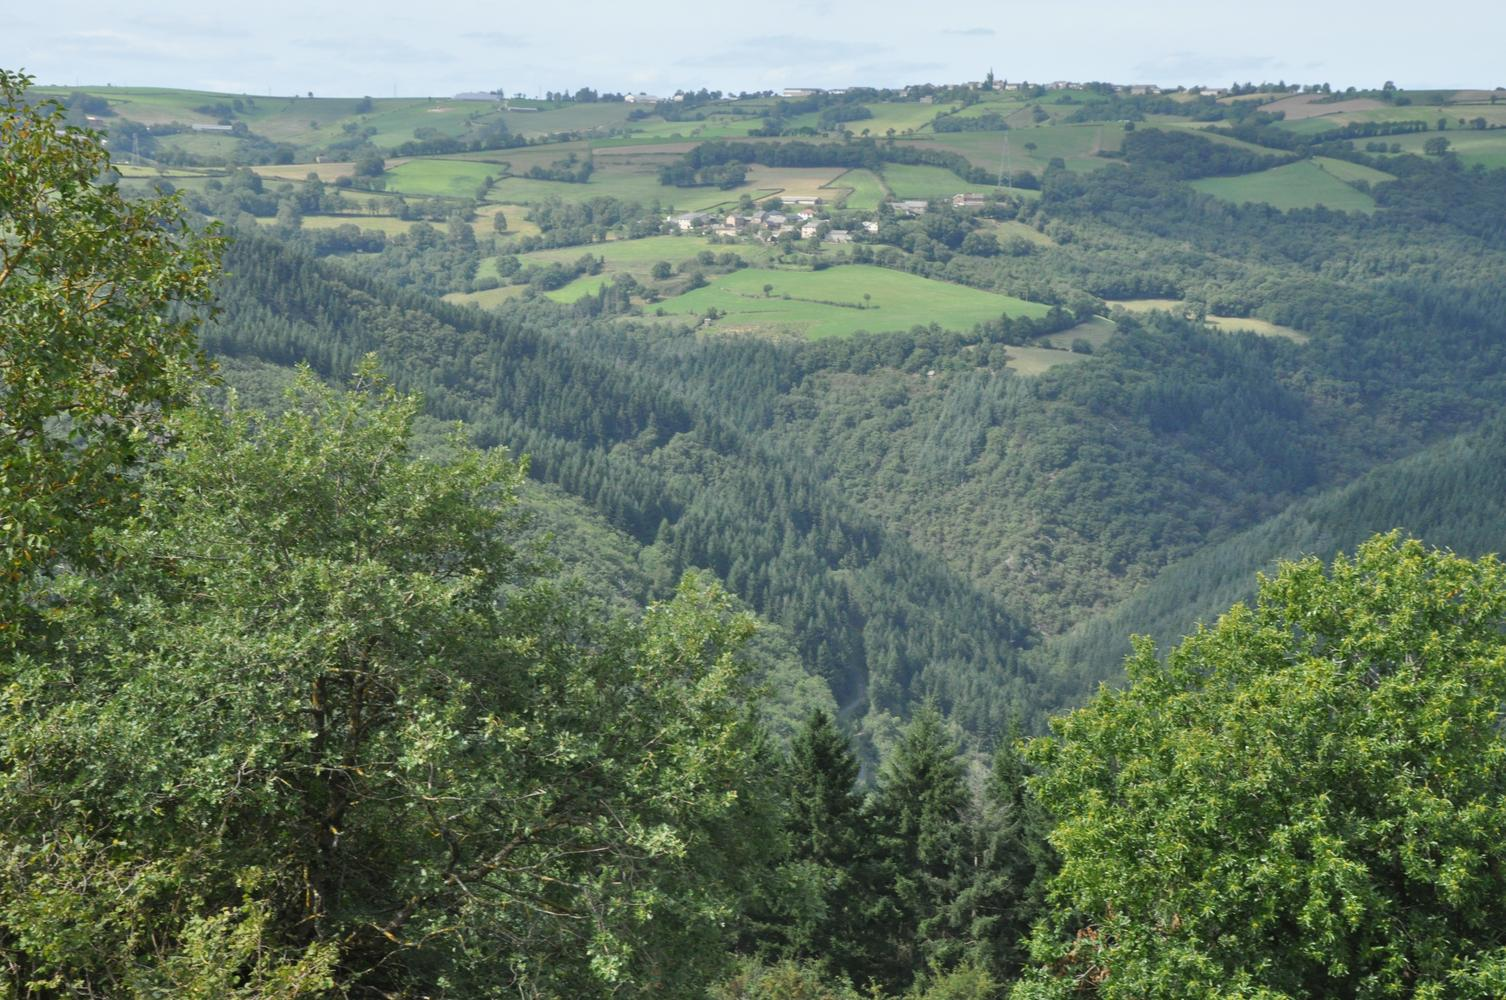 La Callune, Aveyron - photo #20